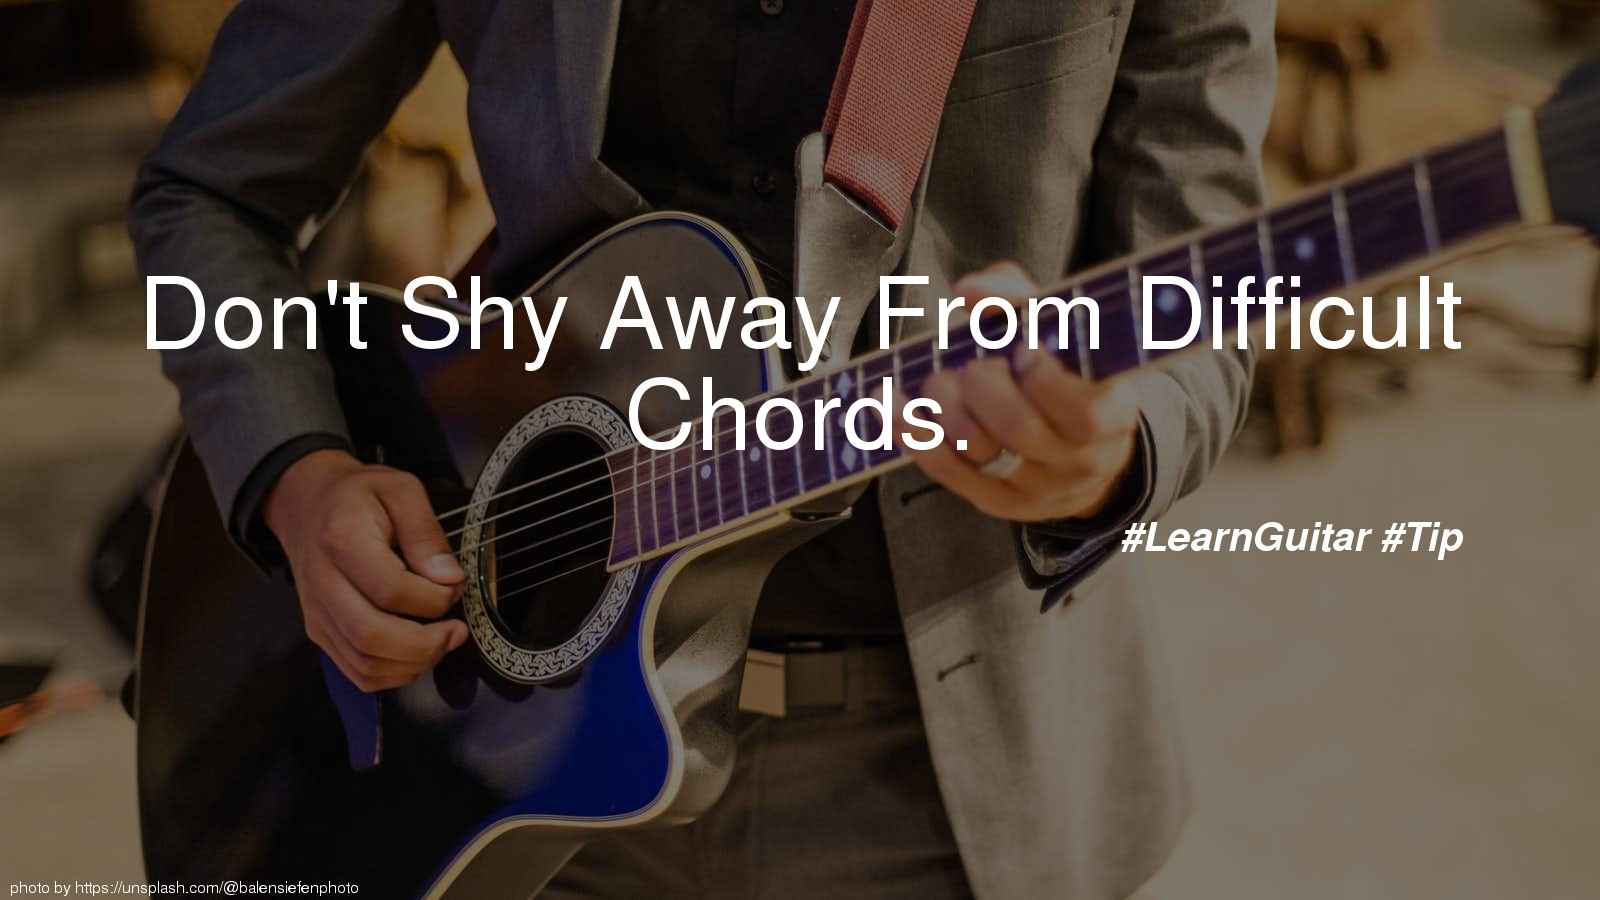 Don't Shy Away From Difficult Chords.